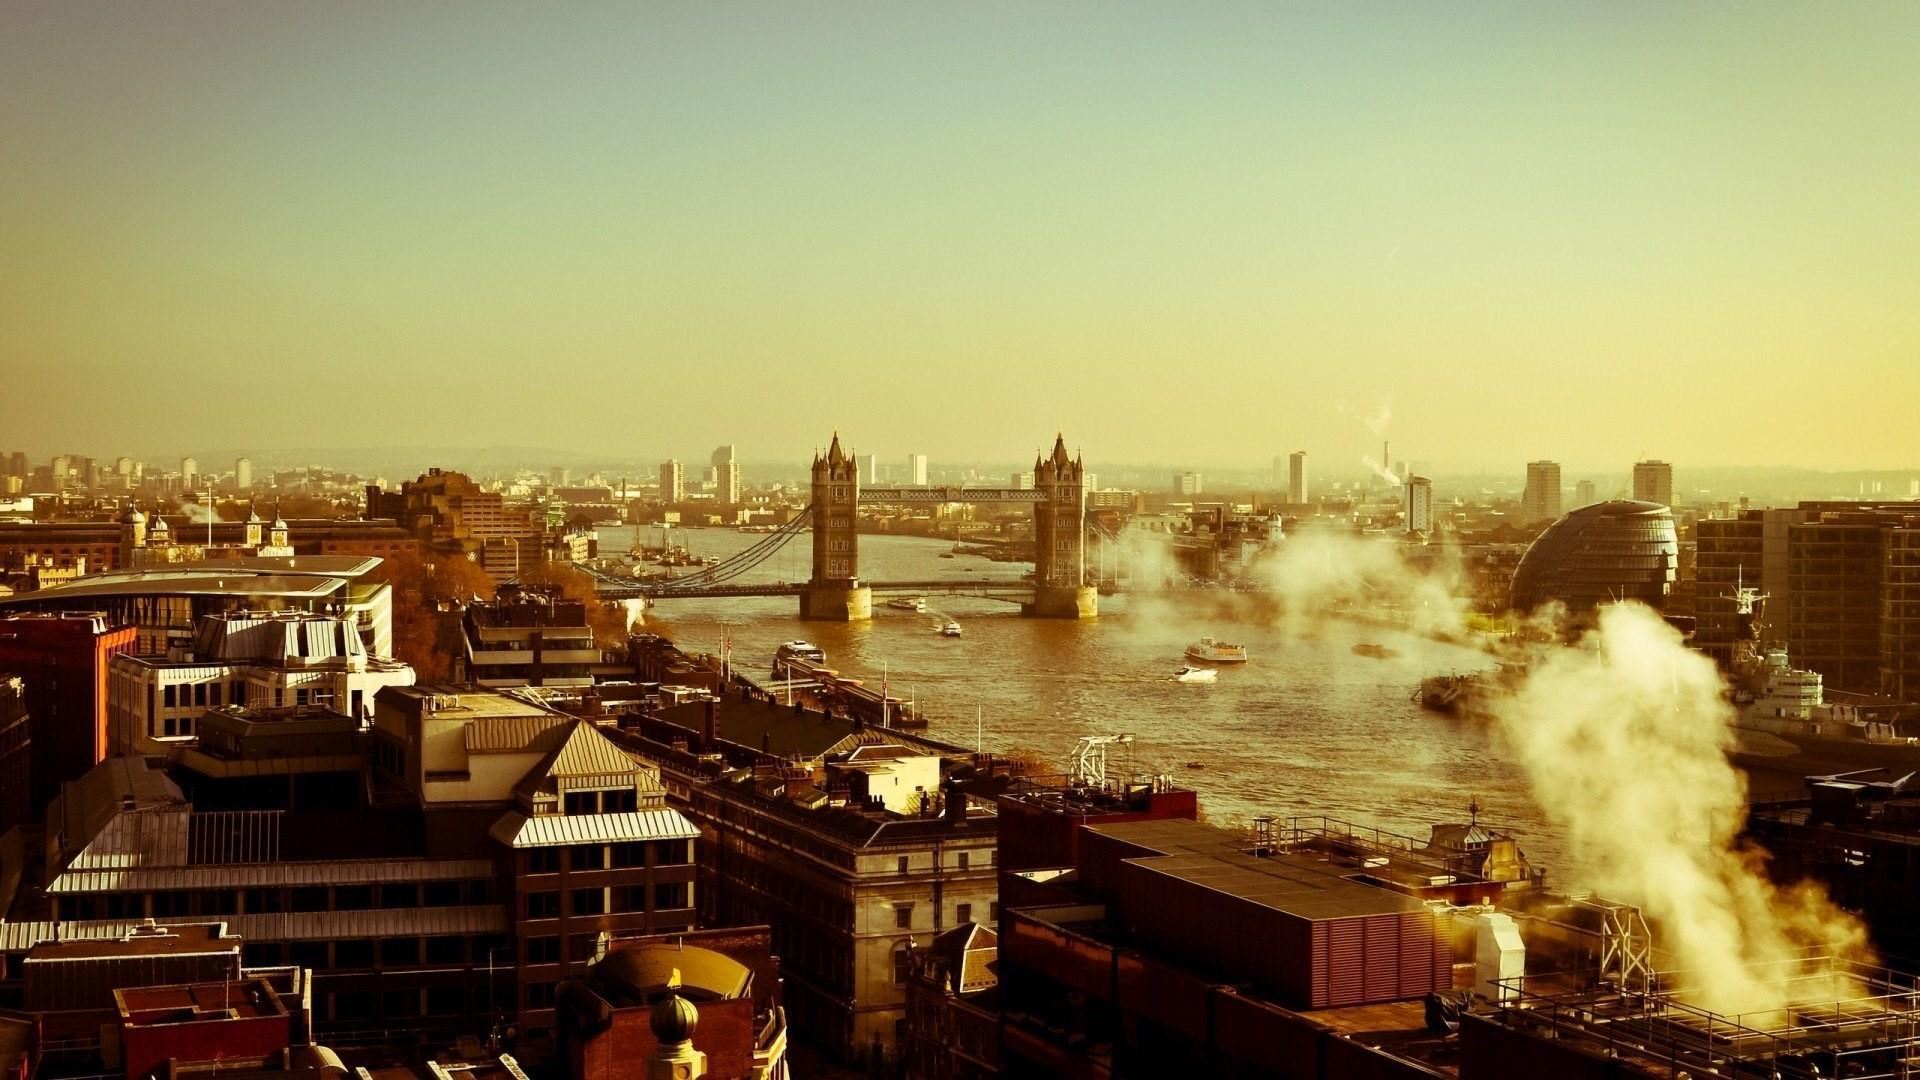 Tower Bridge HD Wallpaper | Wallpaper Studio 10 | Tens of thousands ...